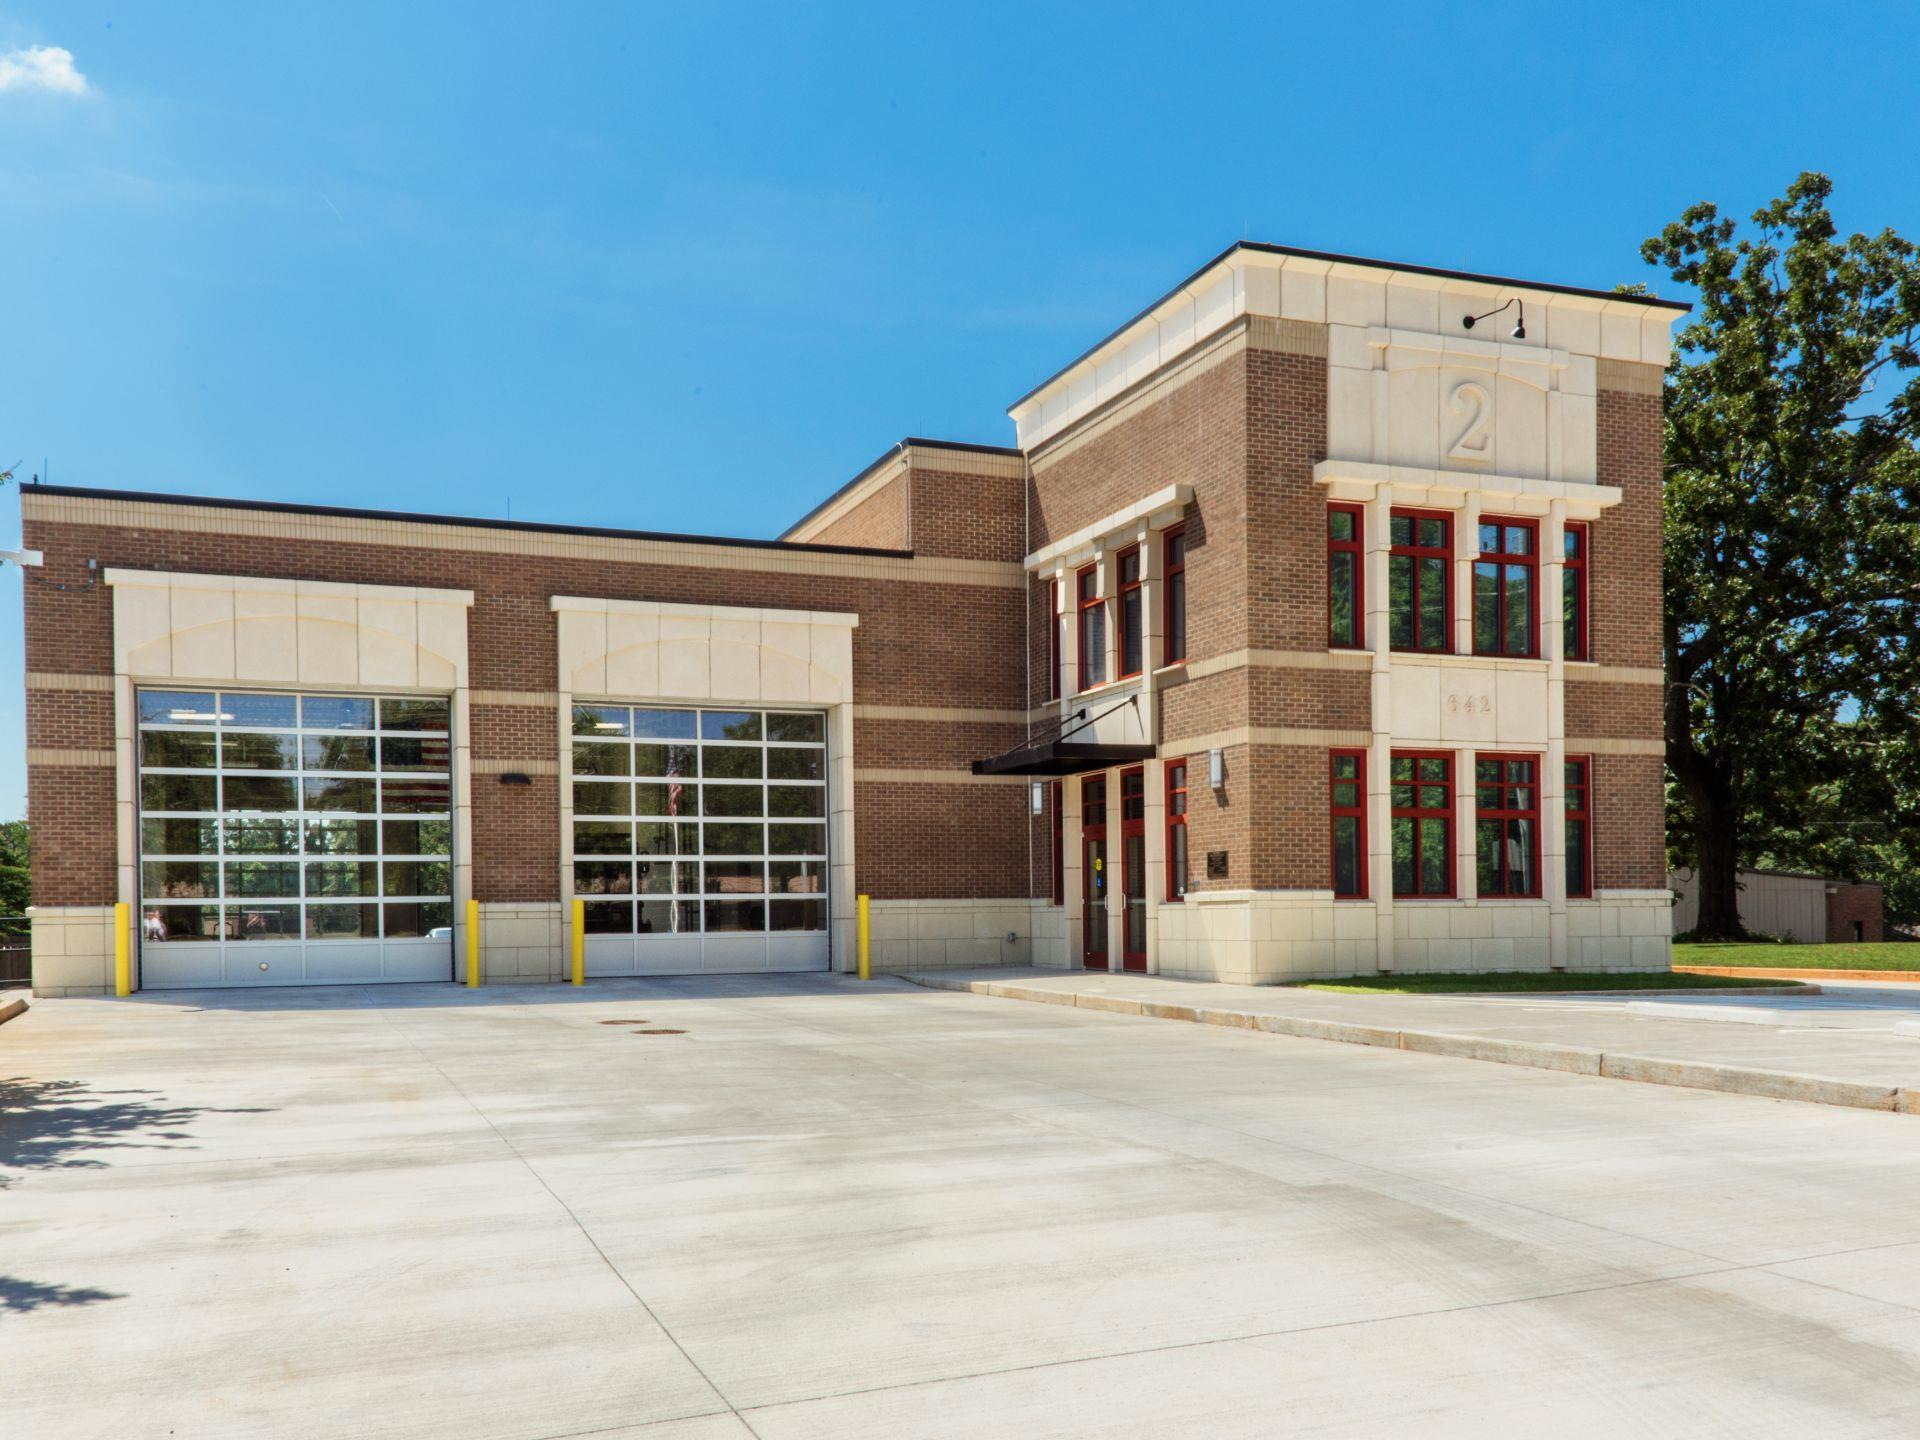 exterior photo of a fire station showing driveway and 2-bay garage